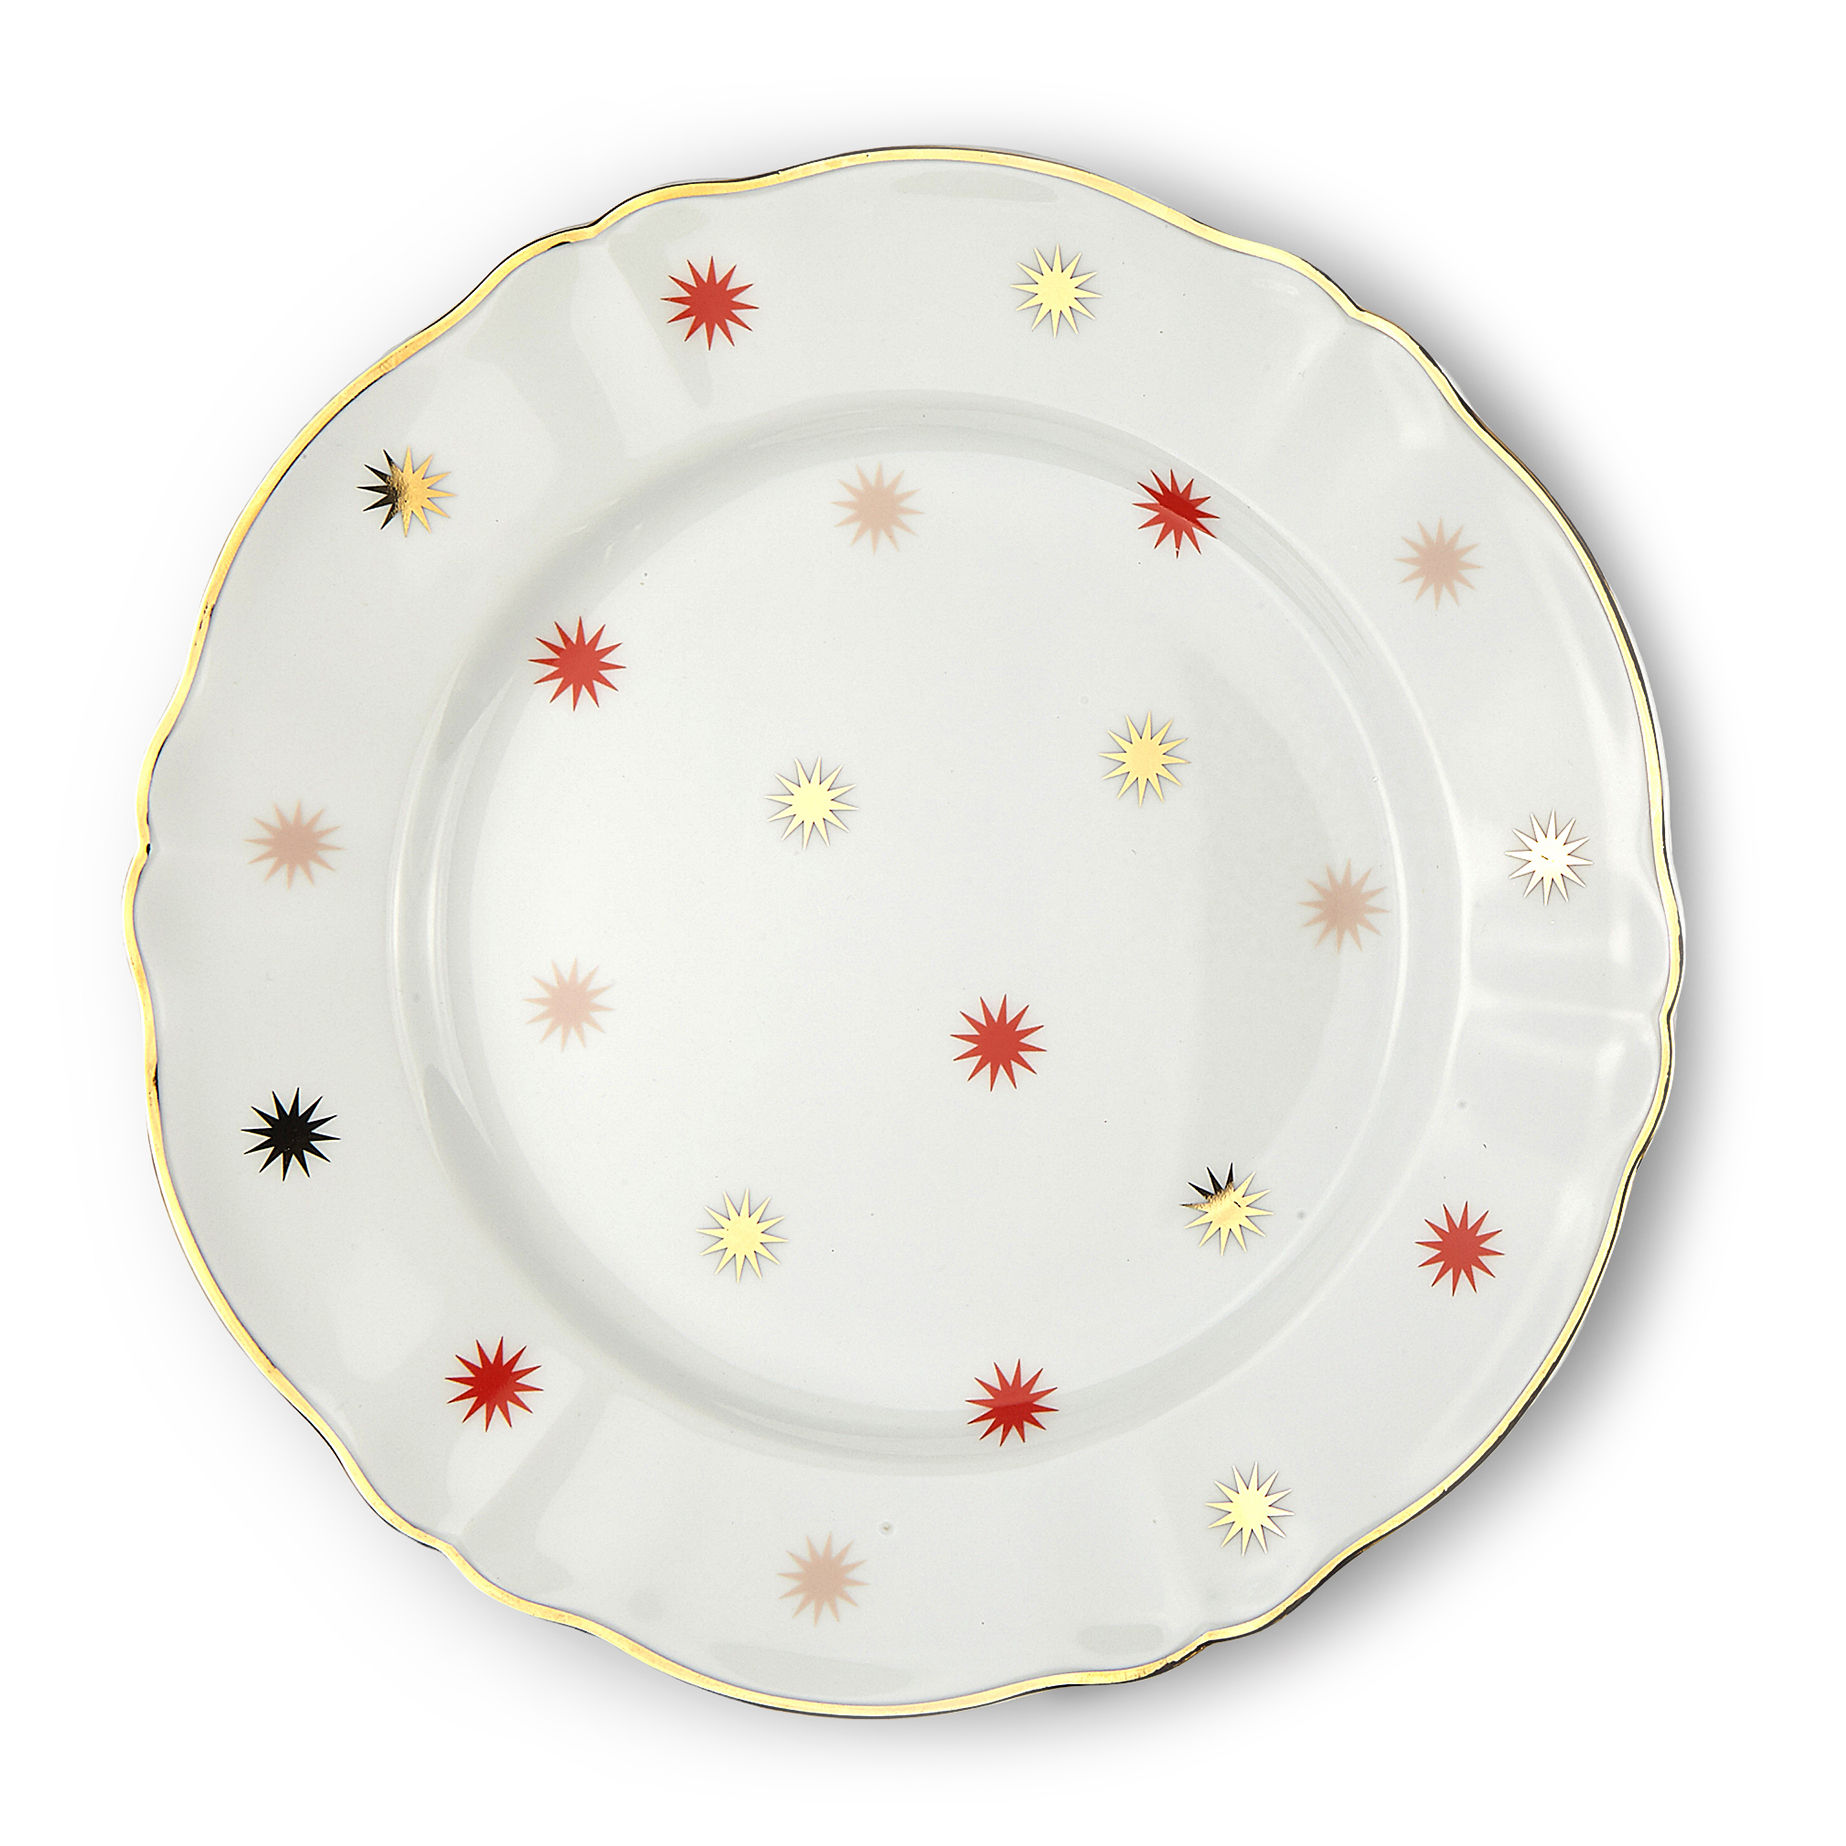 Arts de la table - Assiettes - Assiette Volta / Ø 26,5 cm - Bitossi Home - Etoile - Porcelaine